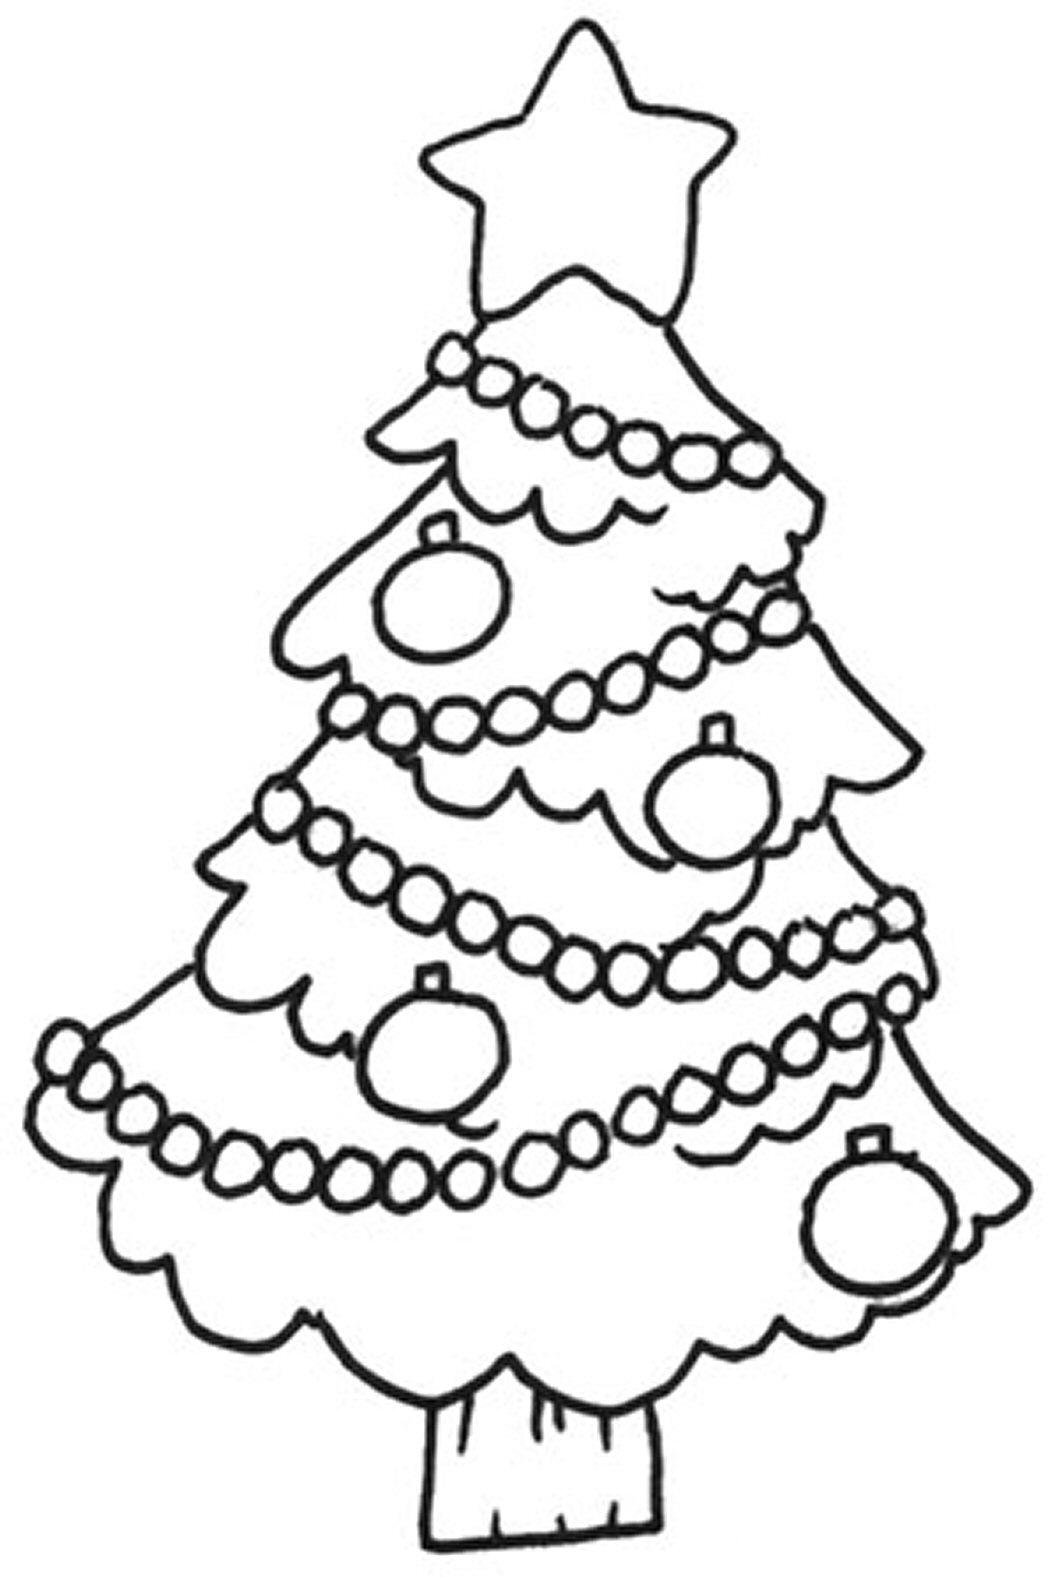 coloring kids clipart simple coloring pages 1 coloring kids coloring clipart kids